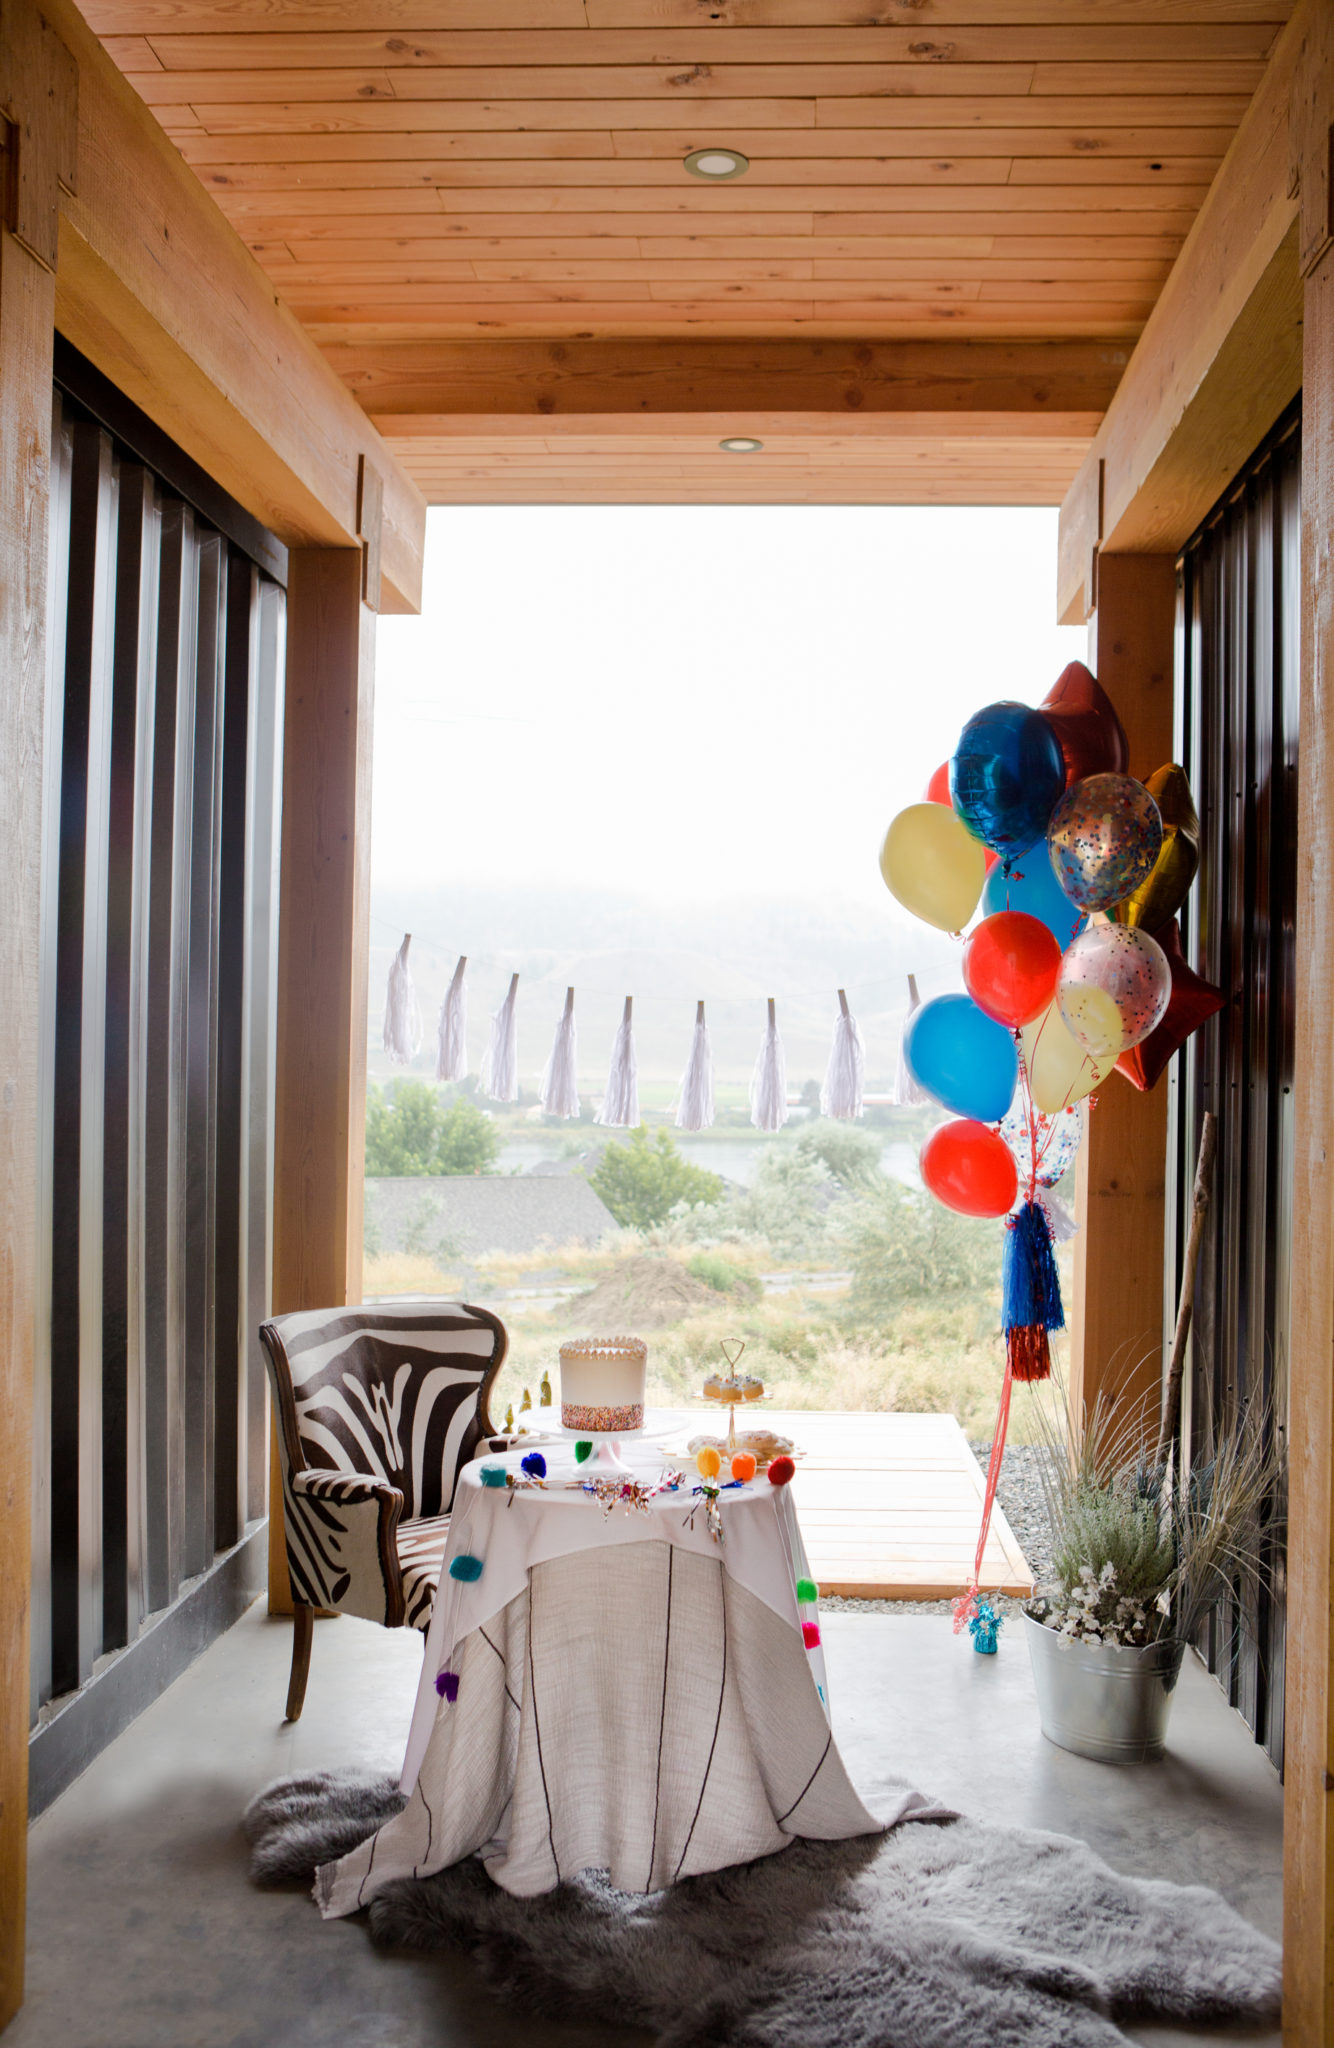 Tourism Kamloops - British Colombia - Blackbox Container Home - Paper Unicorn - Birthday - Party - Sultan Sandur - Cocoa Dot Cakes - Cupcakes